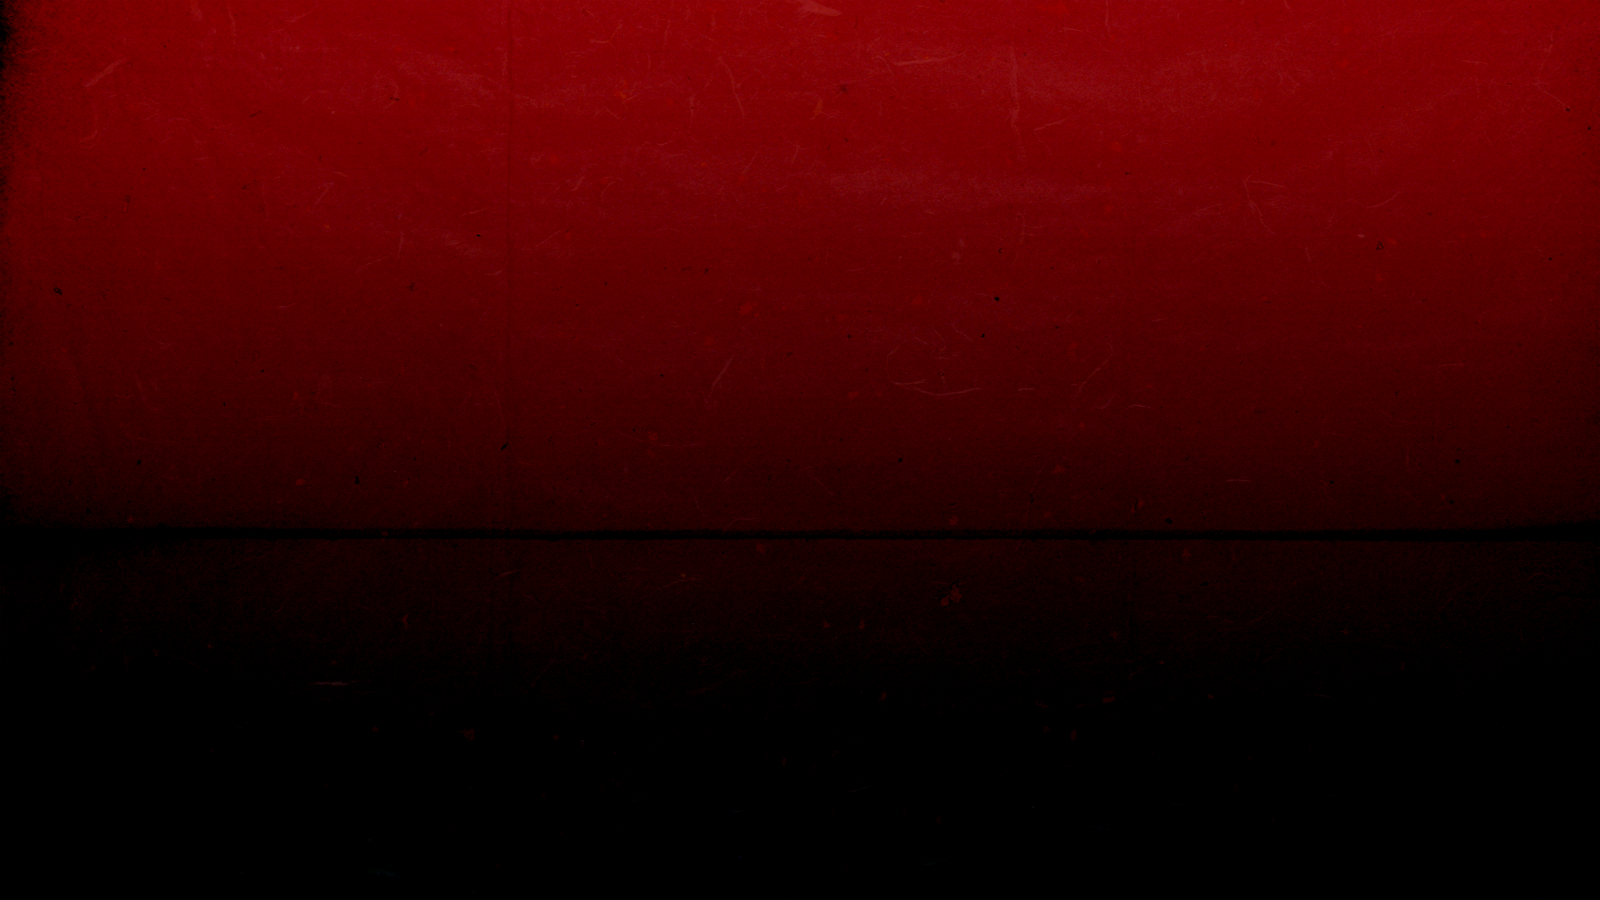 Hd wallpaper red and black - Find This Pin And More On Hd Wallpapers Black Wallpaper Free Hd Black And Red Wallpapers